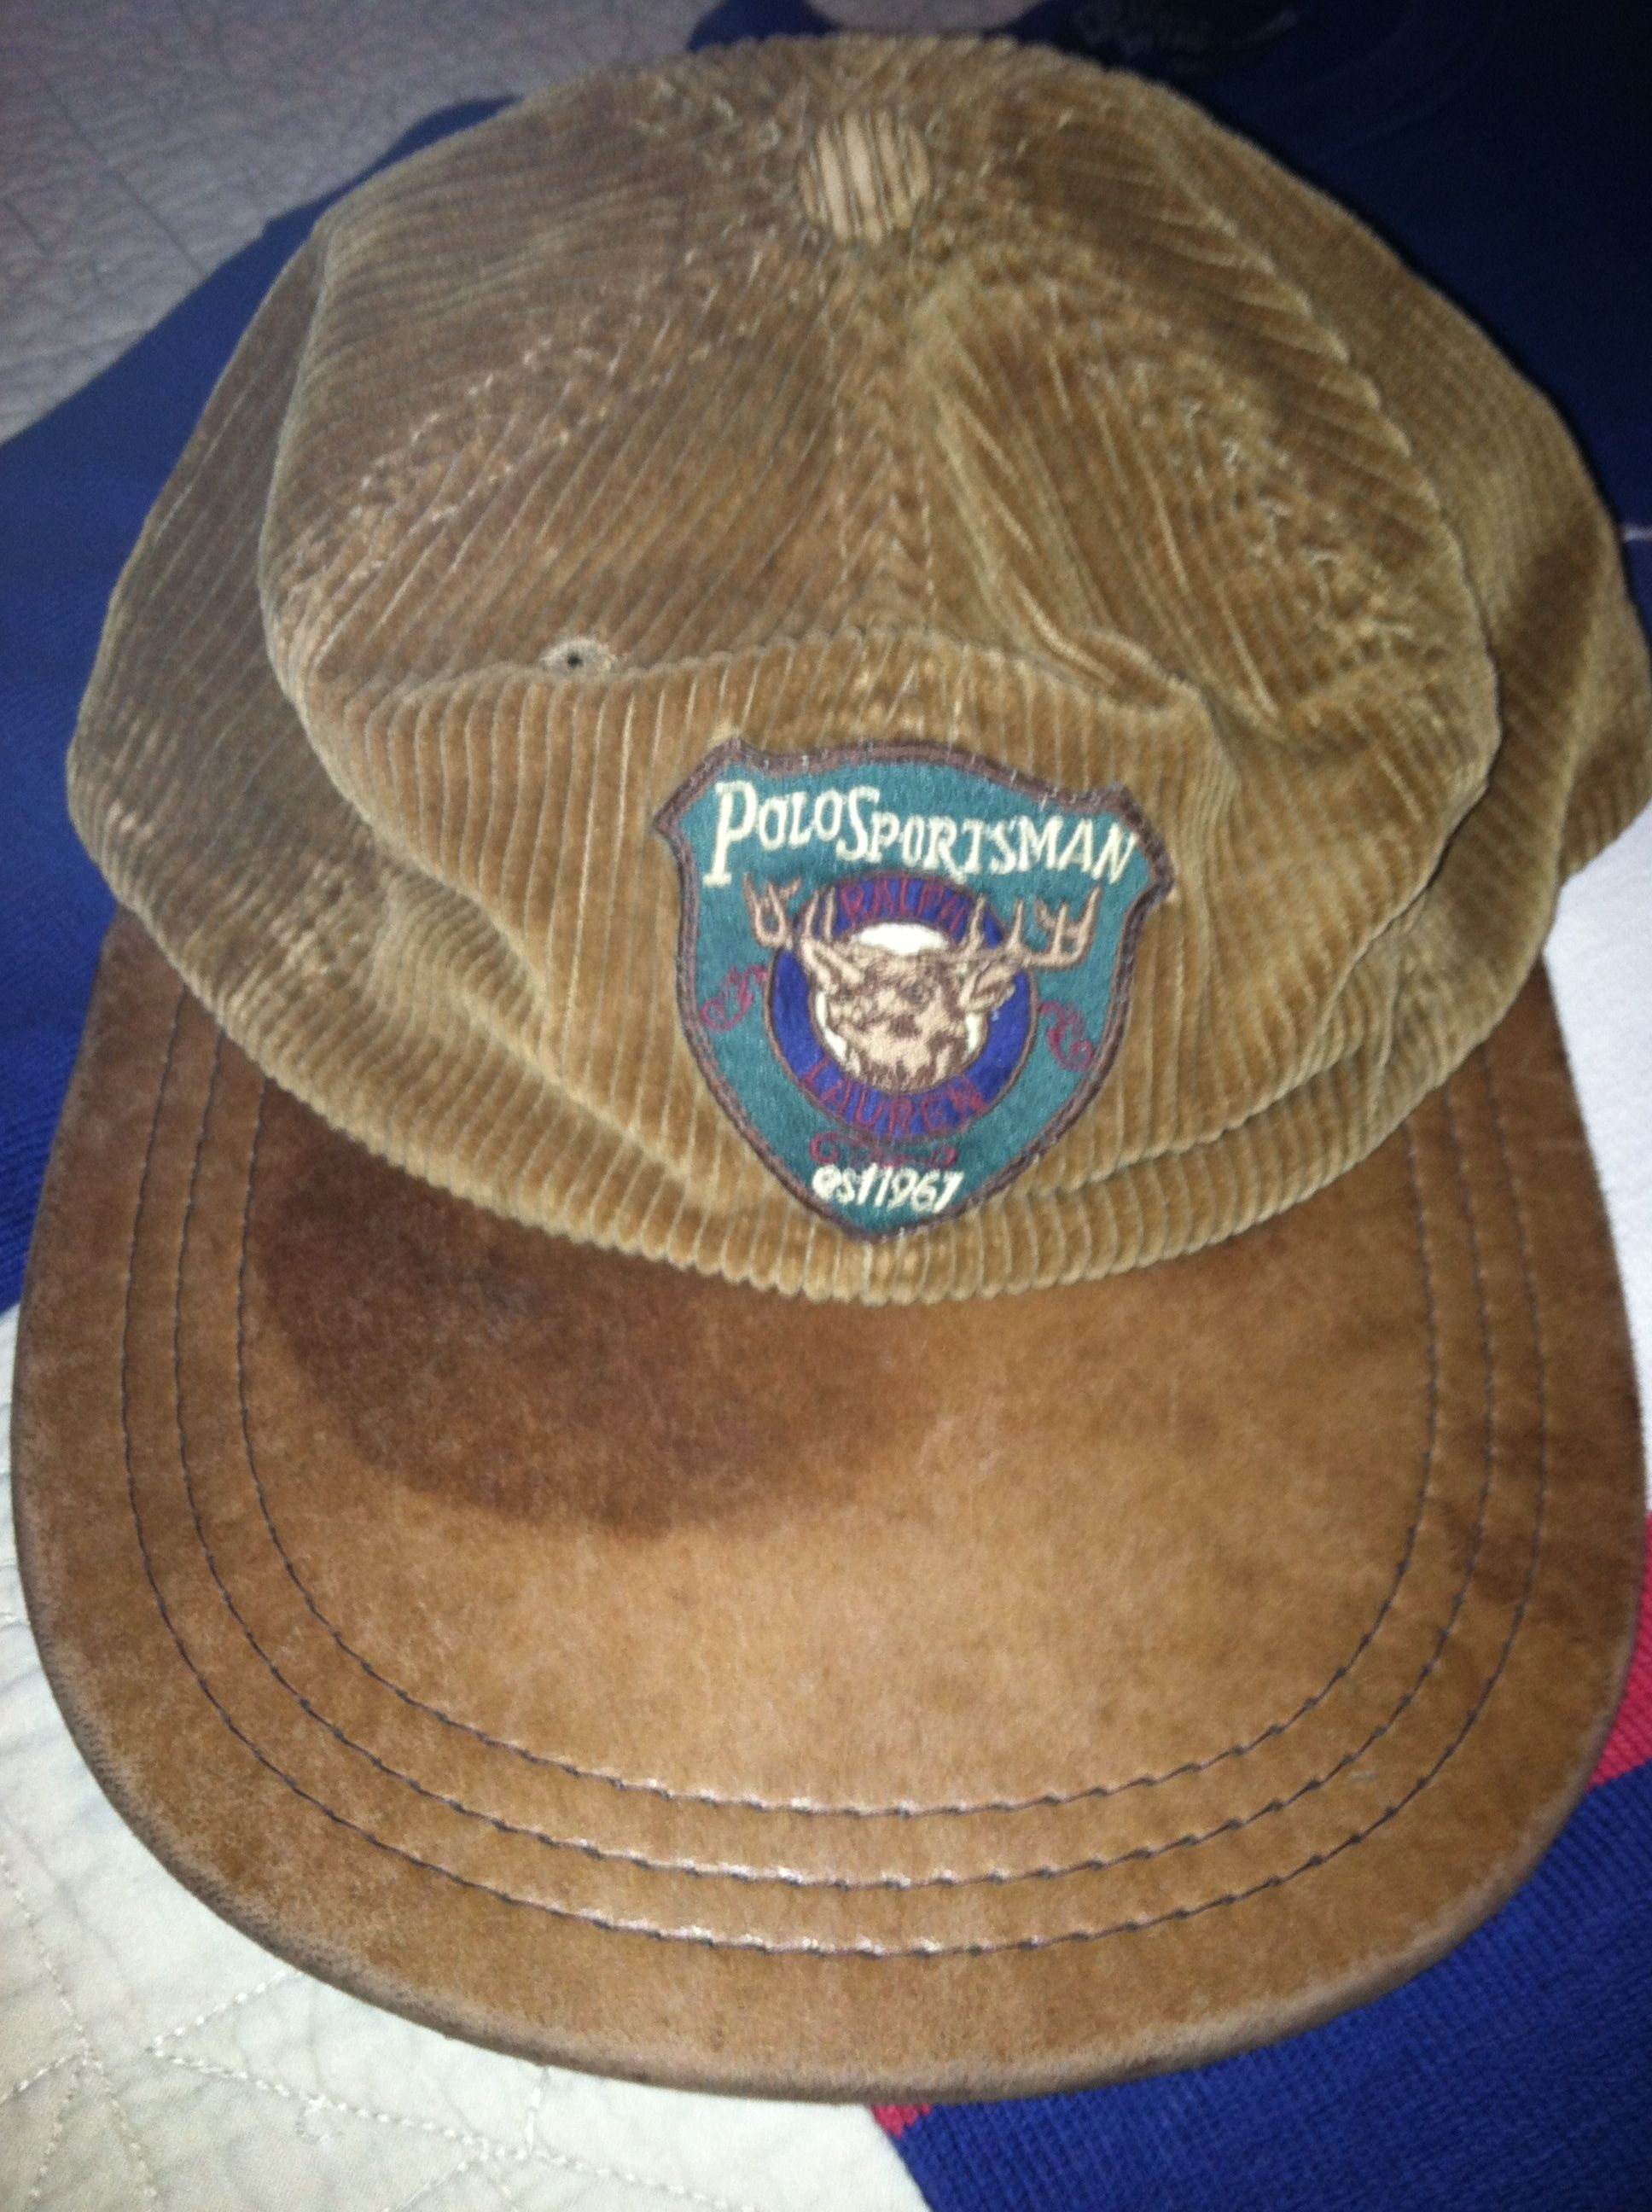 Vintage Polo Sportsman Corduroy Leather Long Bill Fitted